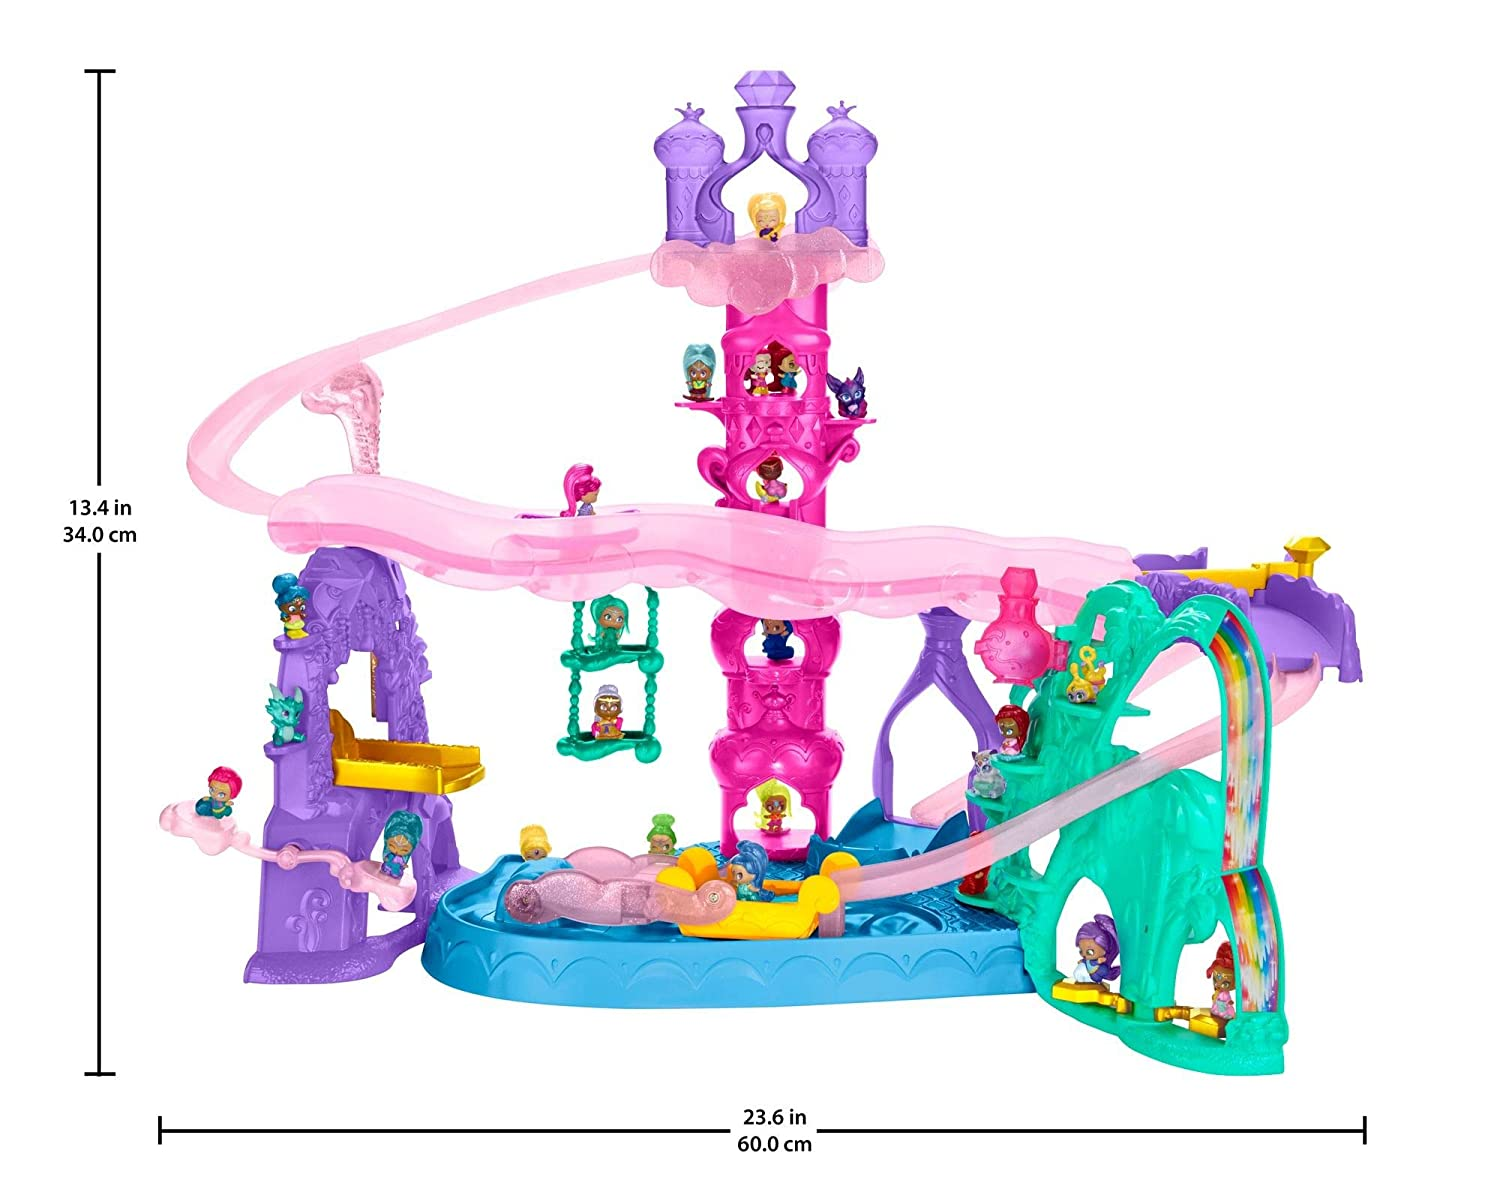 Nickelodeon Shimmer And Shine Teenie Genies Magic Carpet